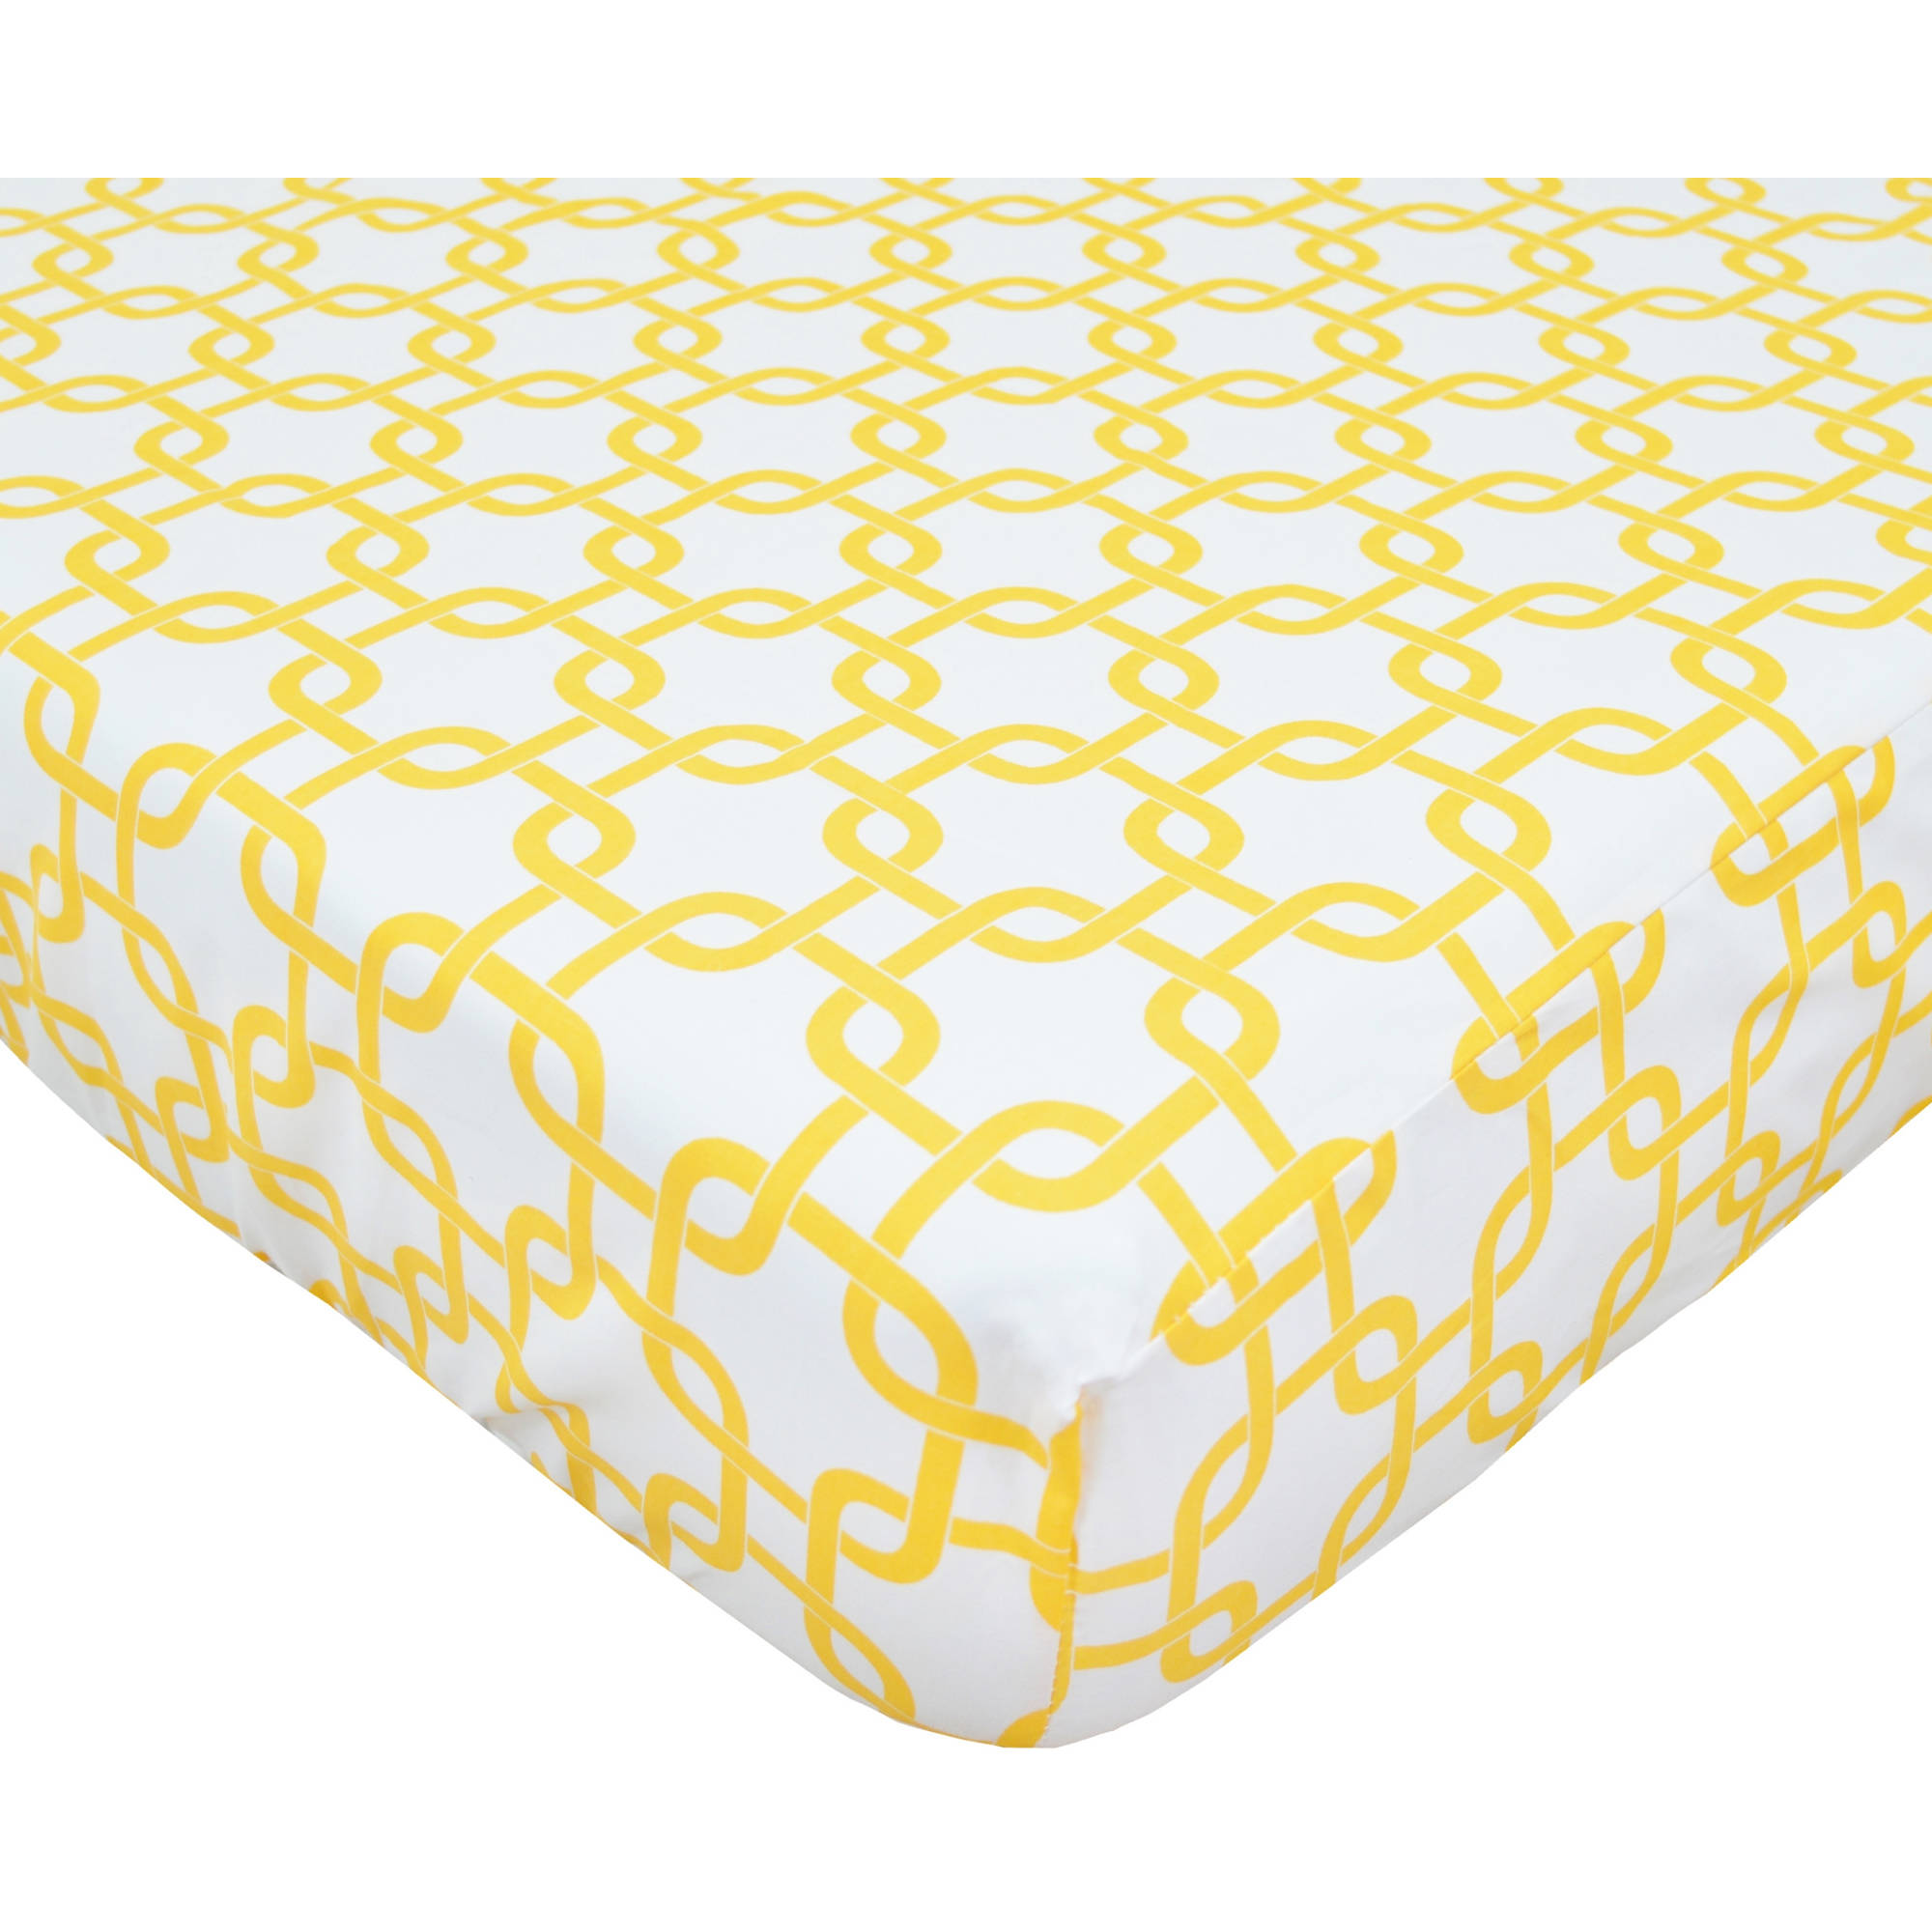 TL Care 100 Percent Cotton Percale Fitted Crib Sheet, Golden Yellow Twill Gotcha